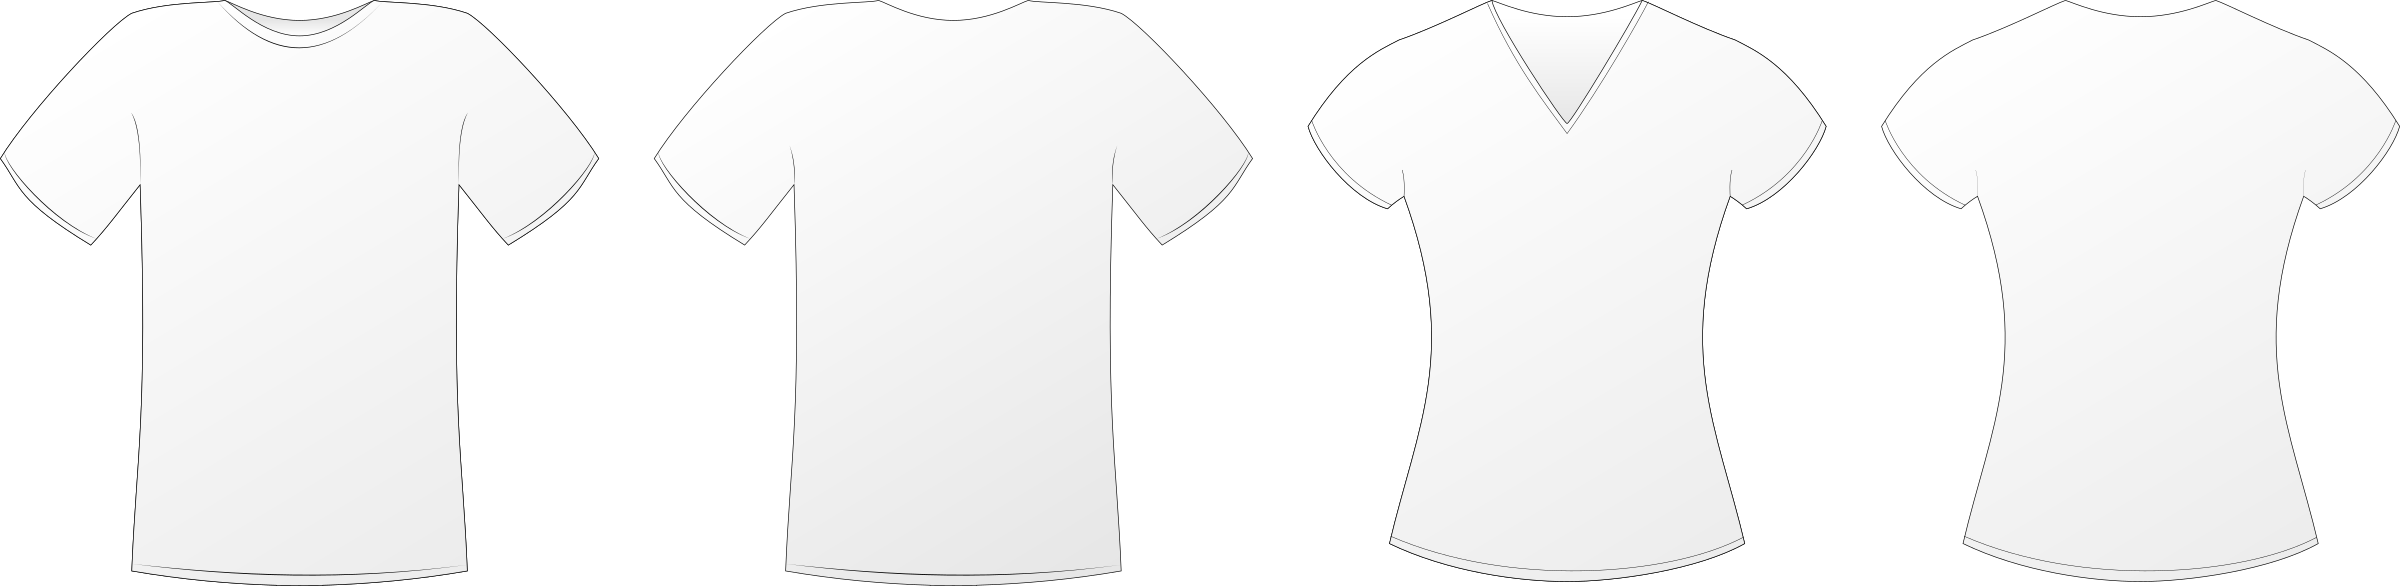 White Tshirts Mockup on love shirt